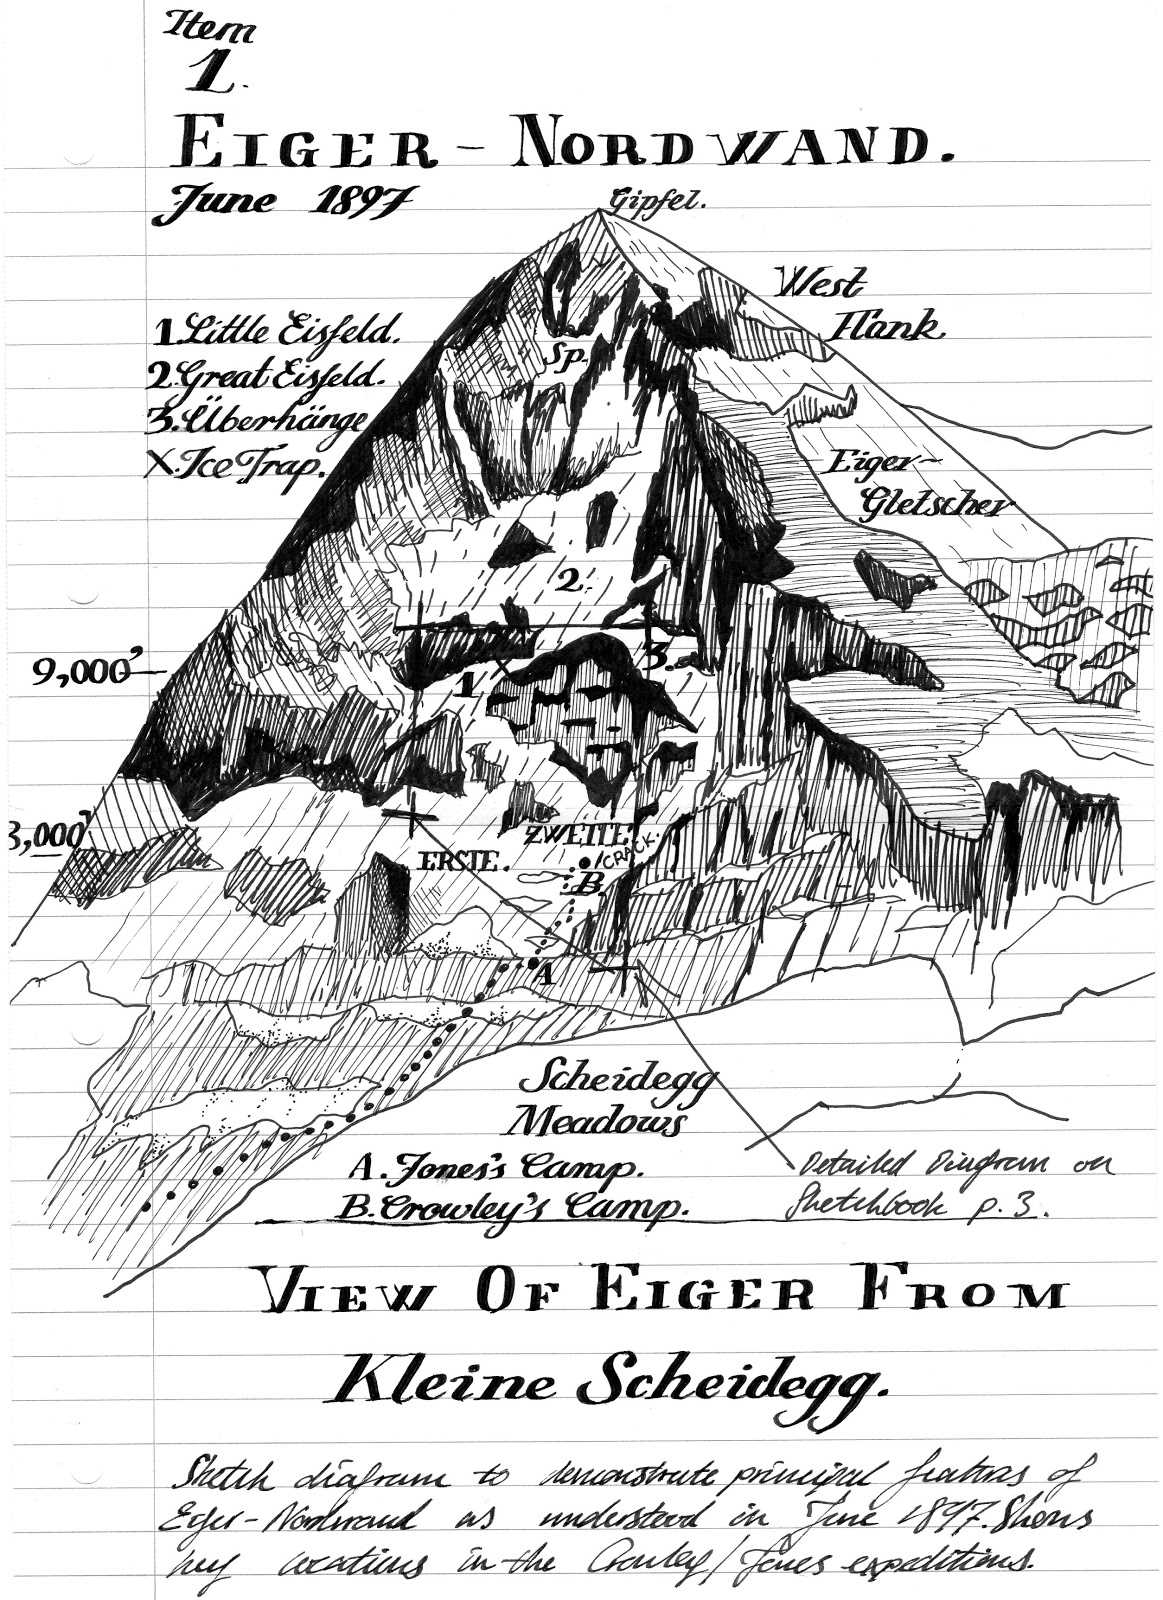 Facts And The Historical Novelist Alex Roddie 3406b Engine Diagram Eiger North Face 1897